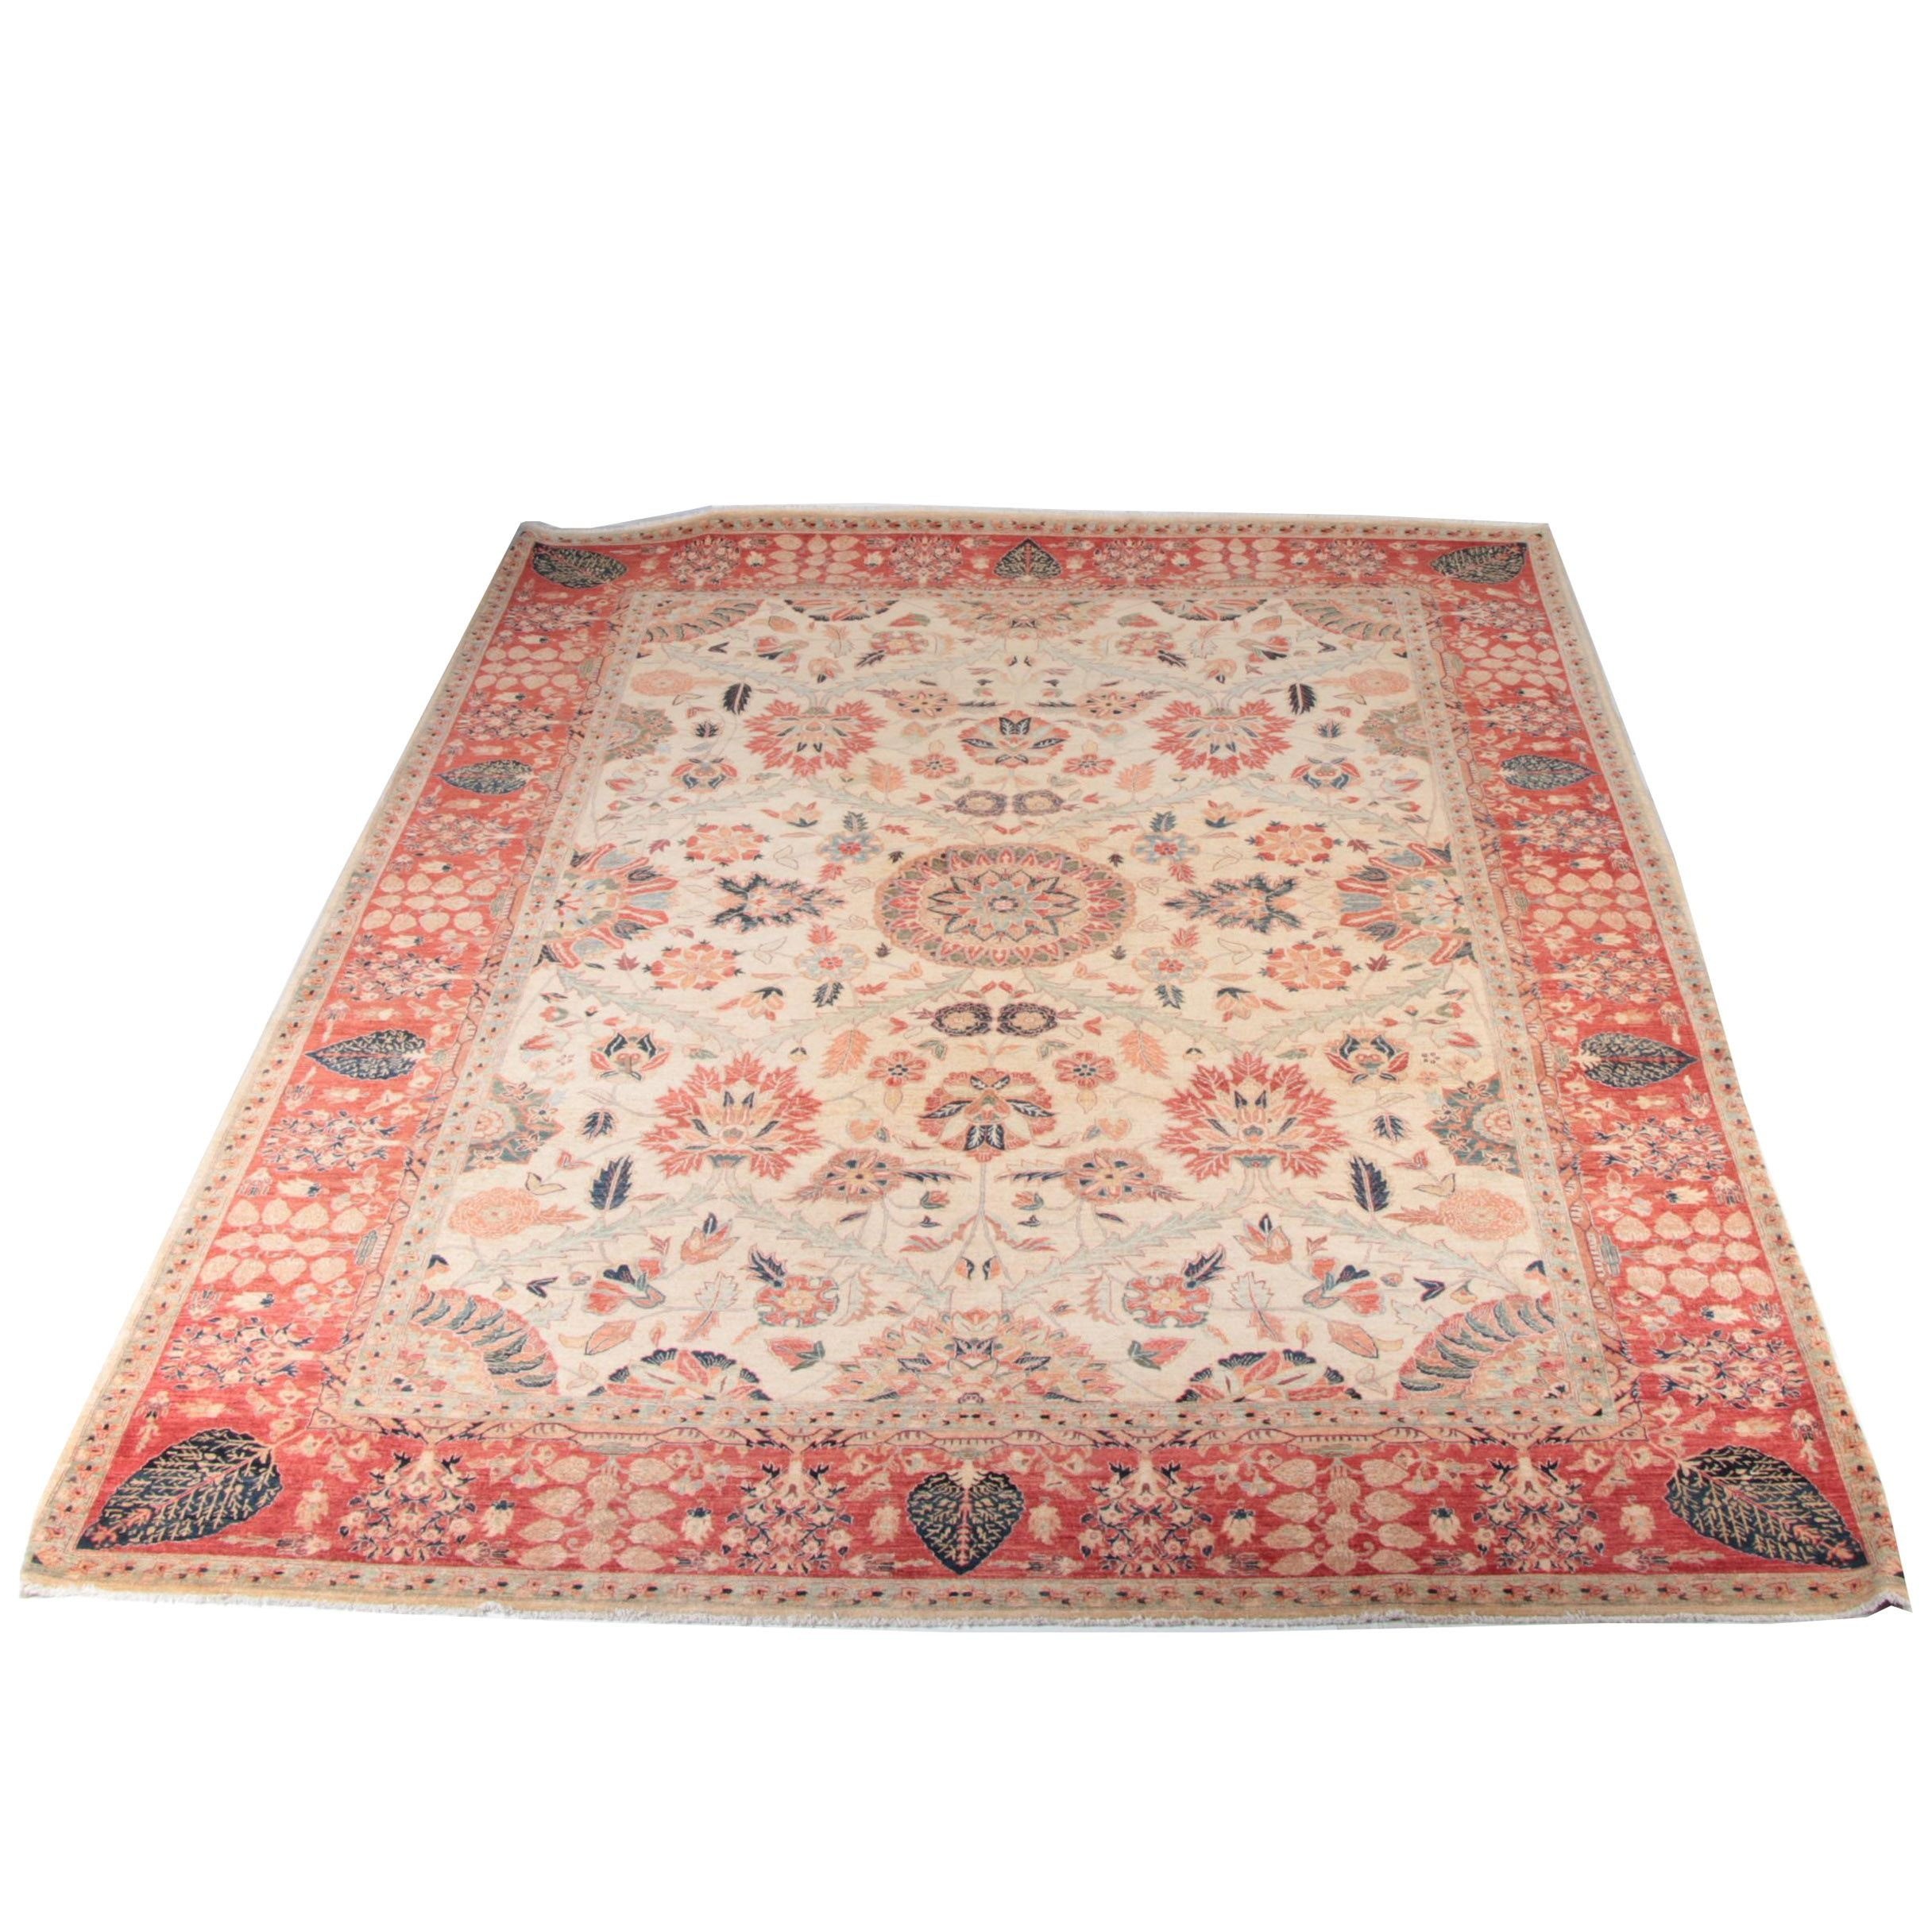 Finely Hand-Knotted Romanian Wool Area Rug